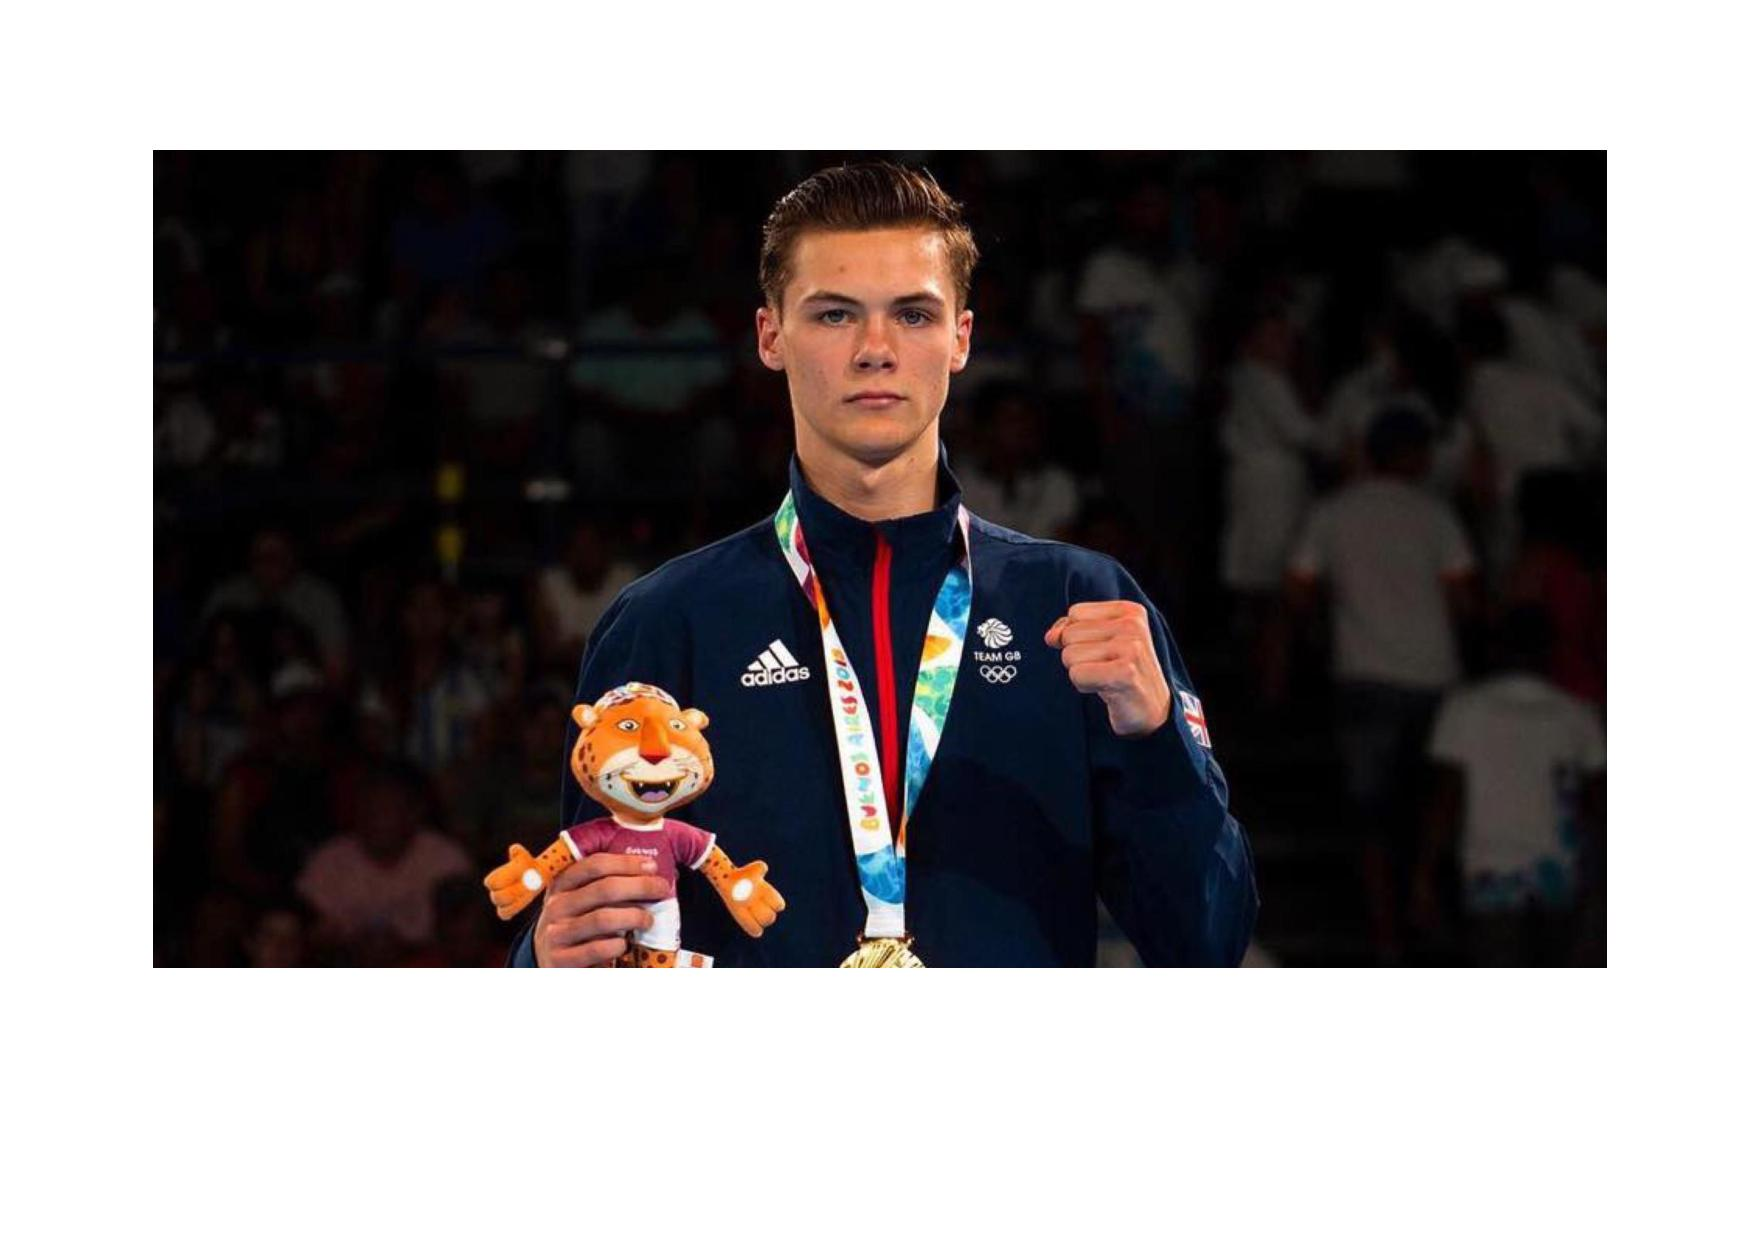 Youth Olympic Gold For Hunslet Club Boxer